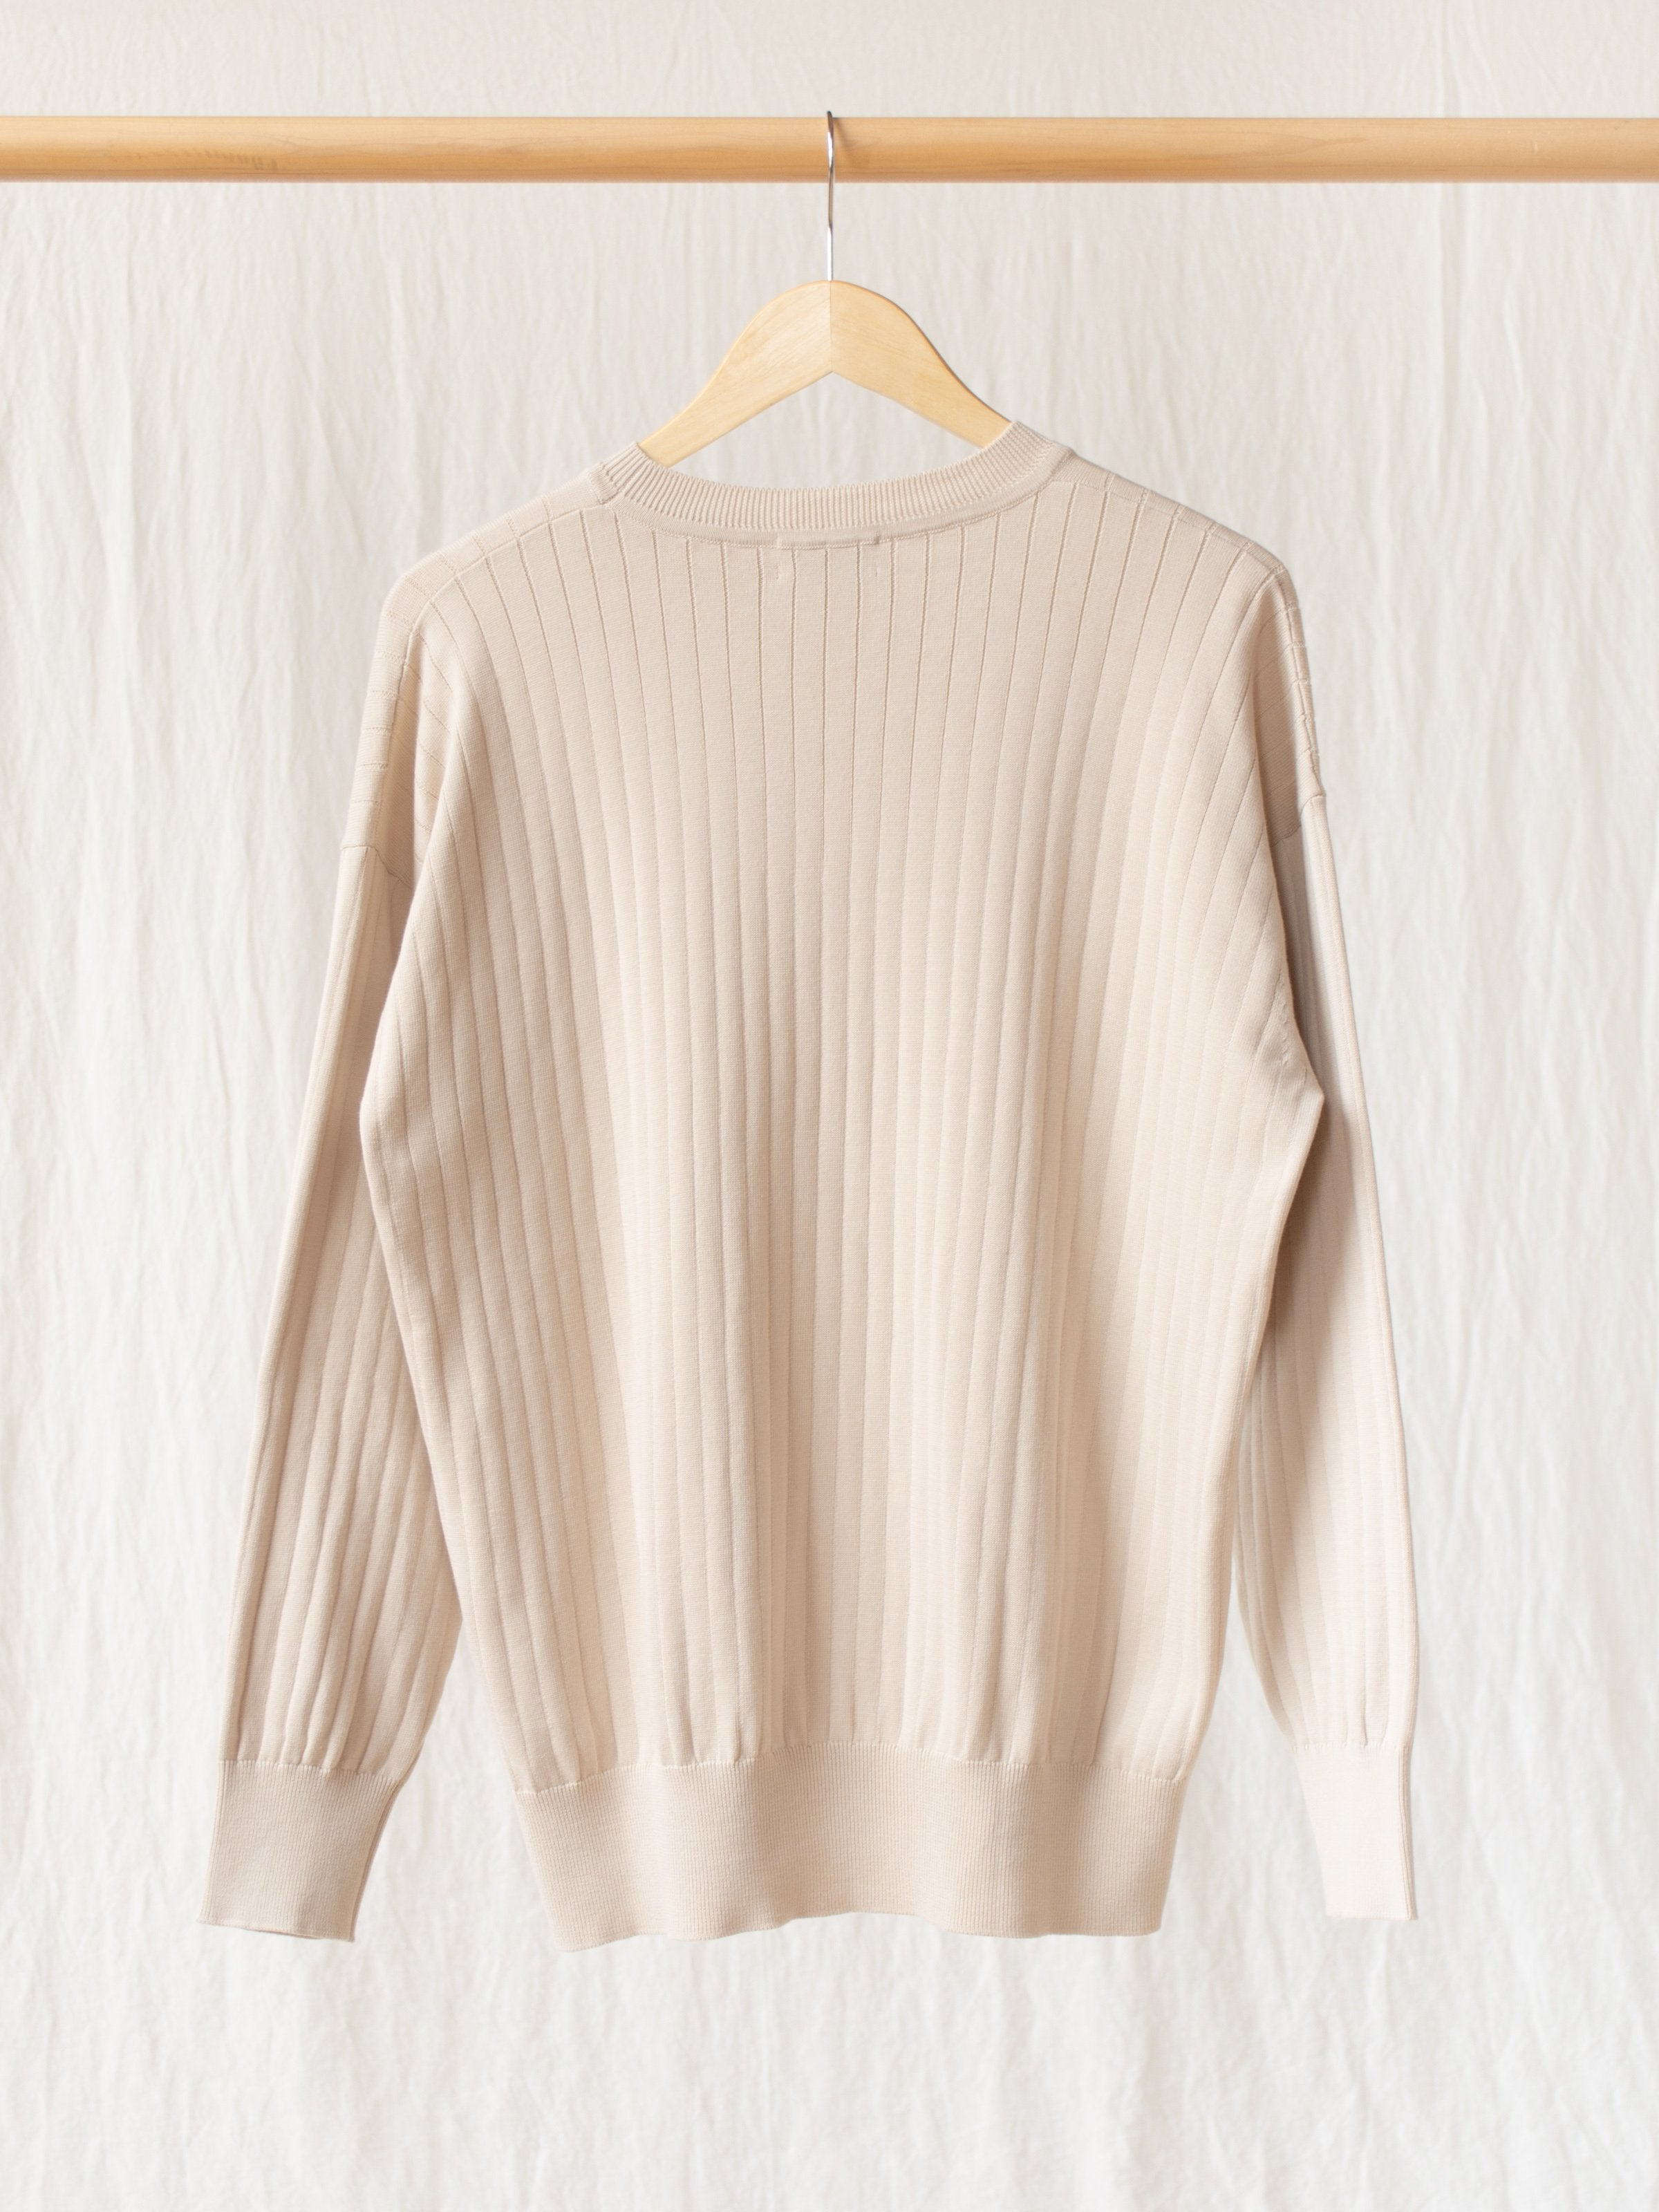 Namu Shop - Phlannel Suvin Cotton Wide Rib Knit - Beige